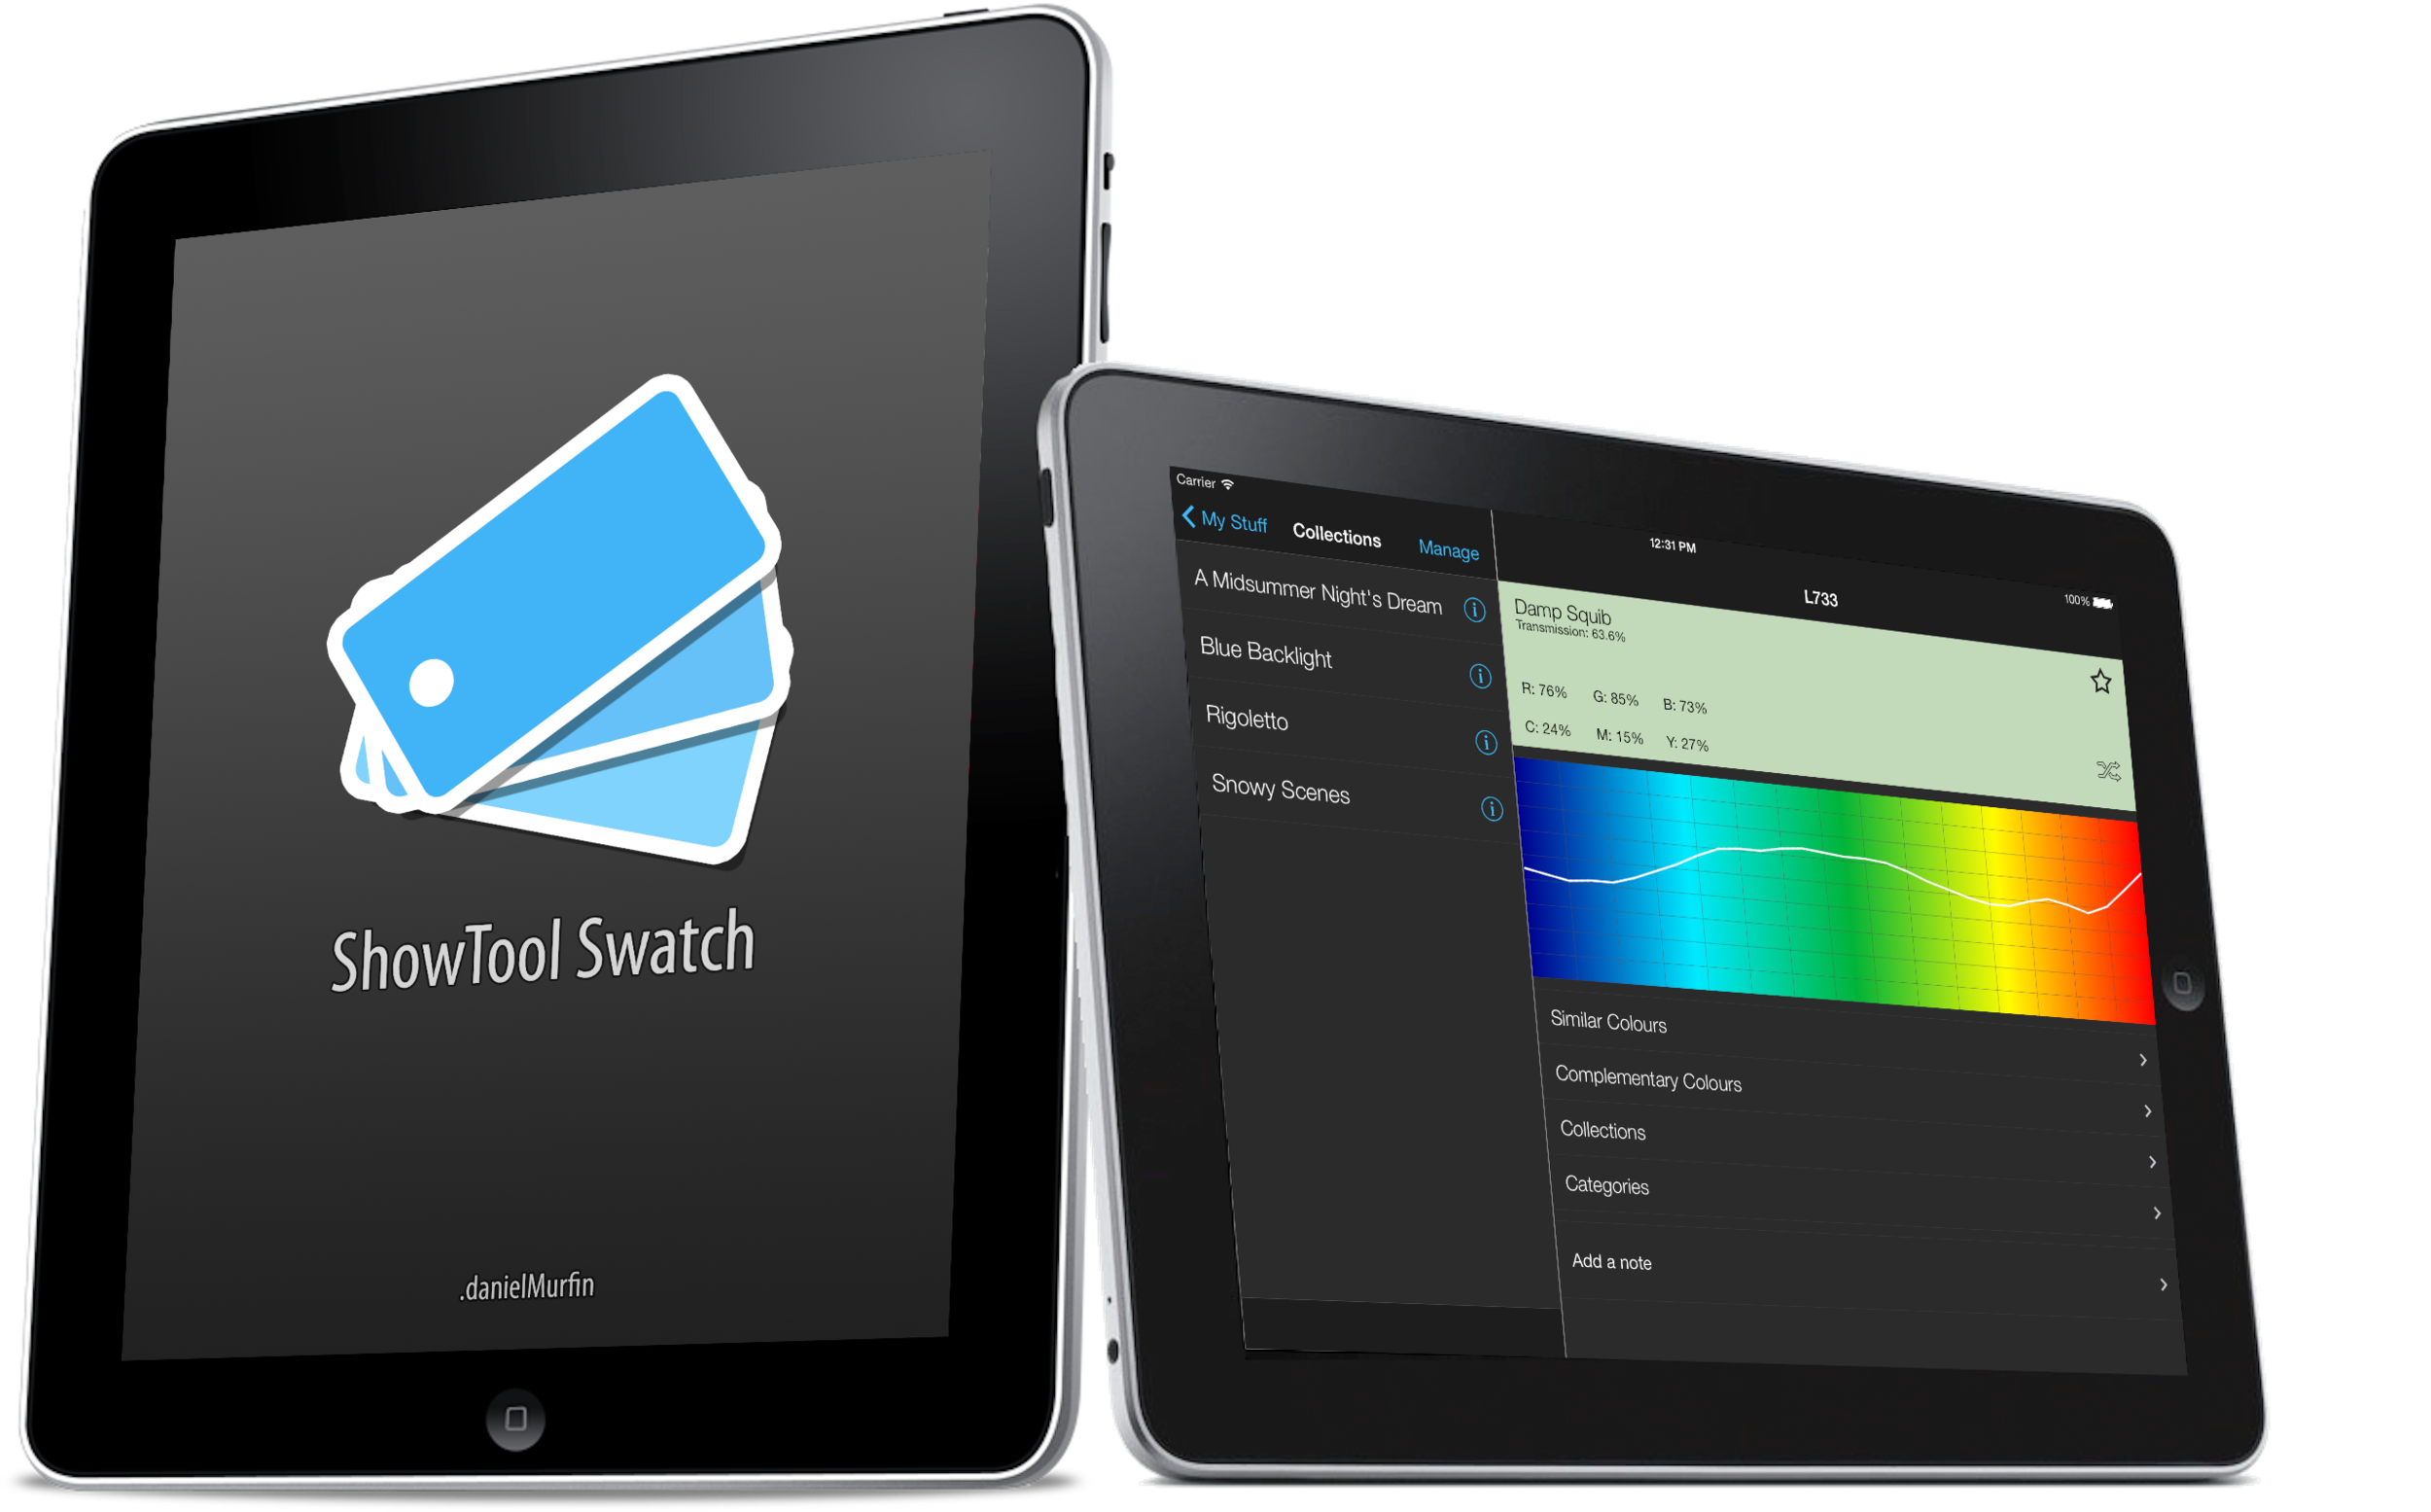 ShowTool-Swatch-iPad-1.png